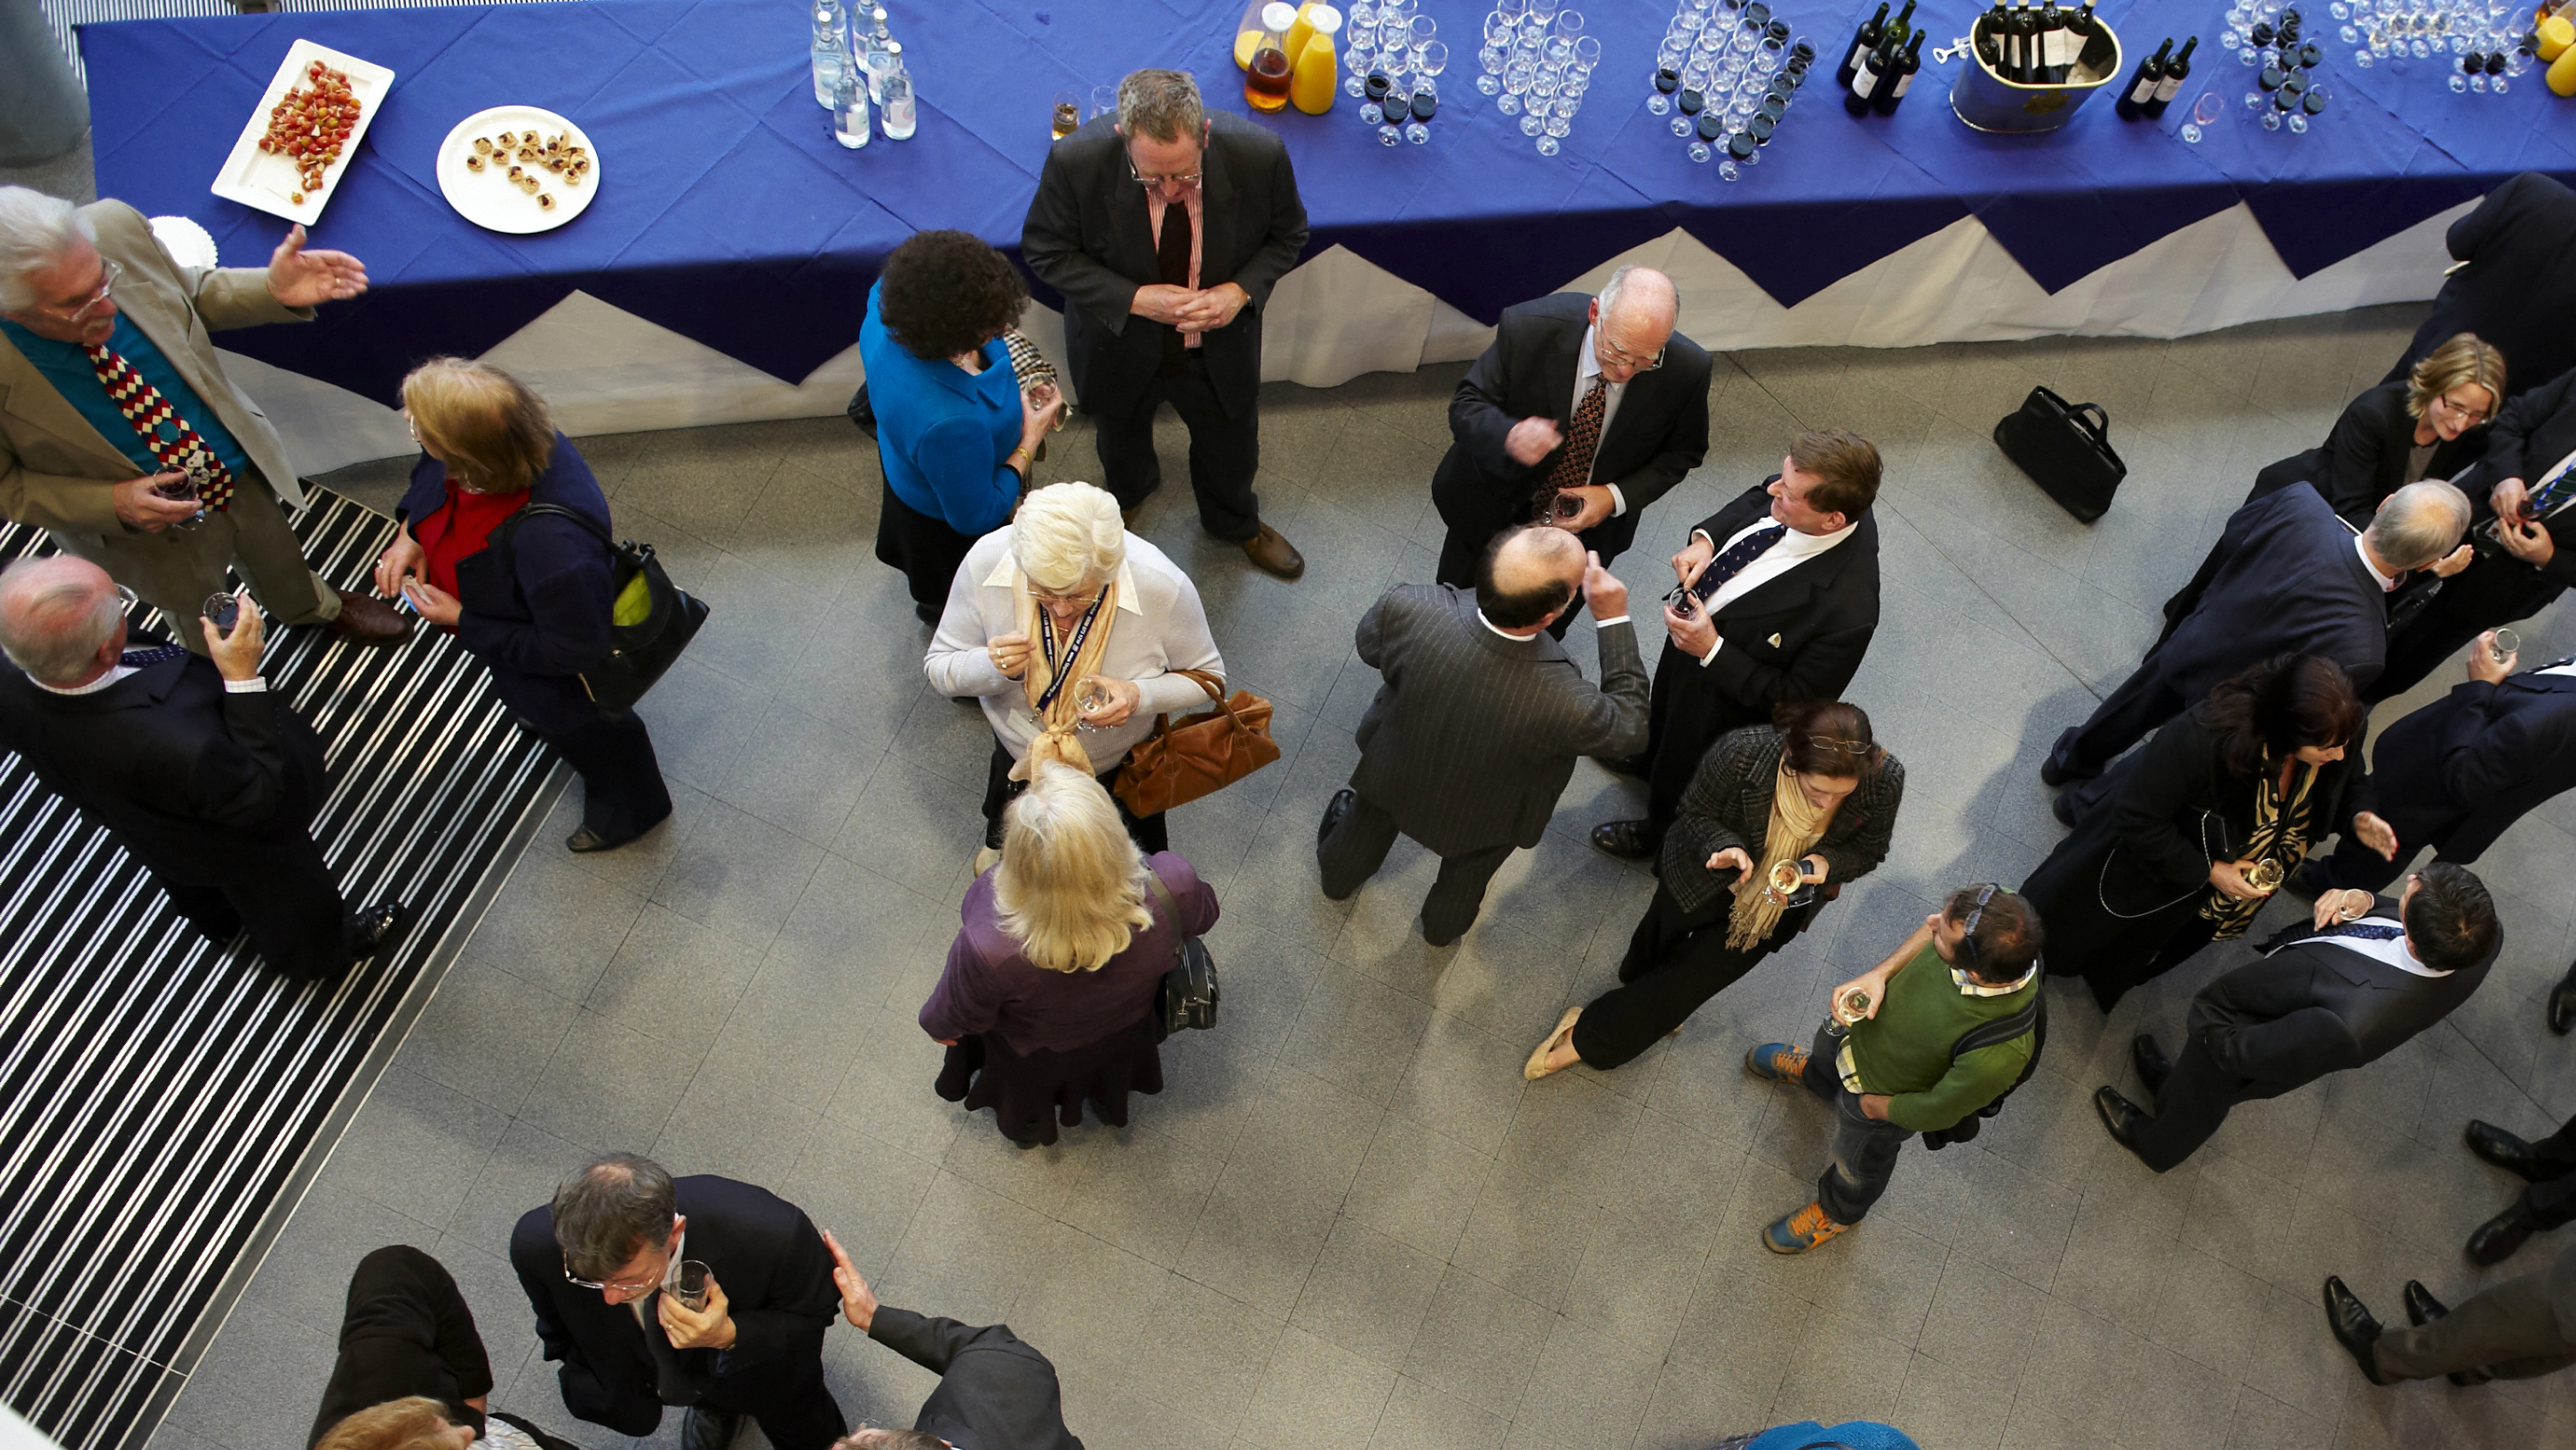 Birds eye view of people networking in small groups